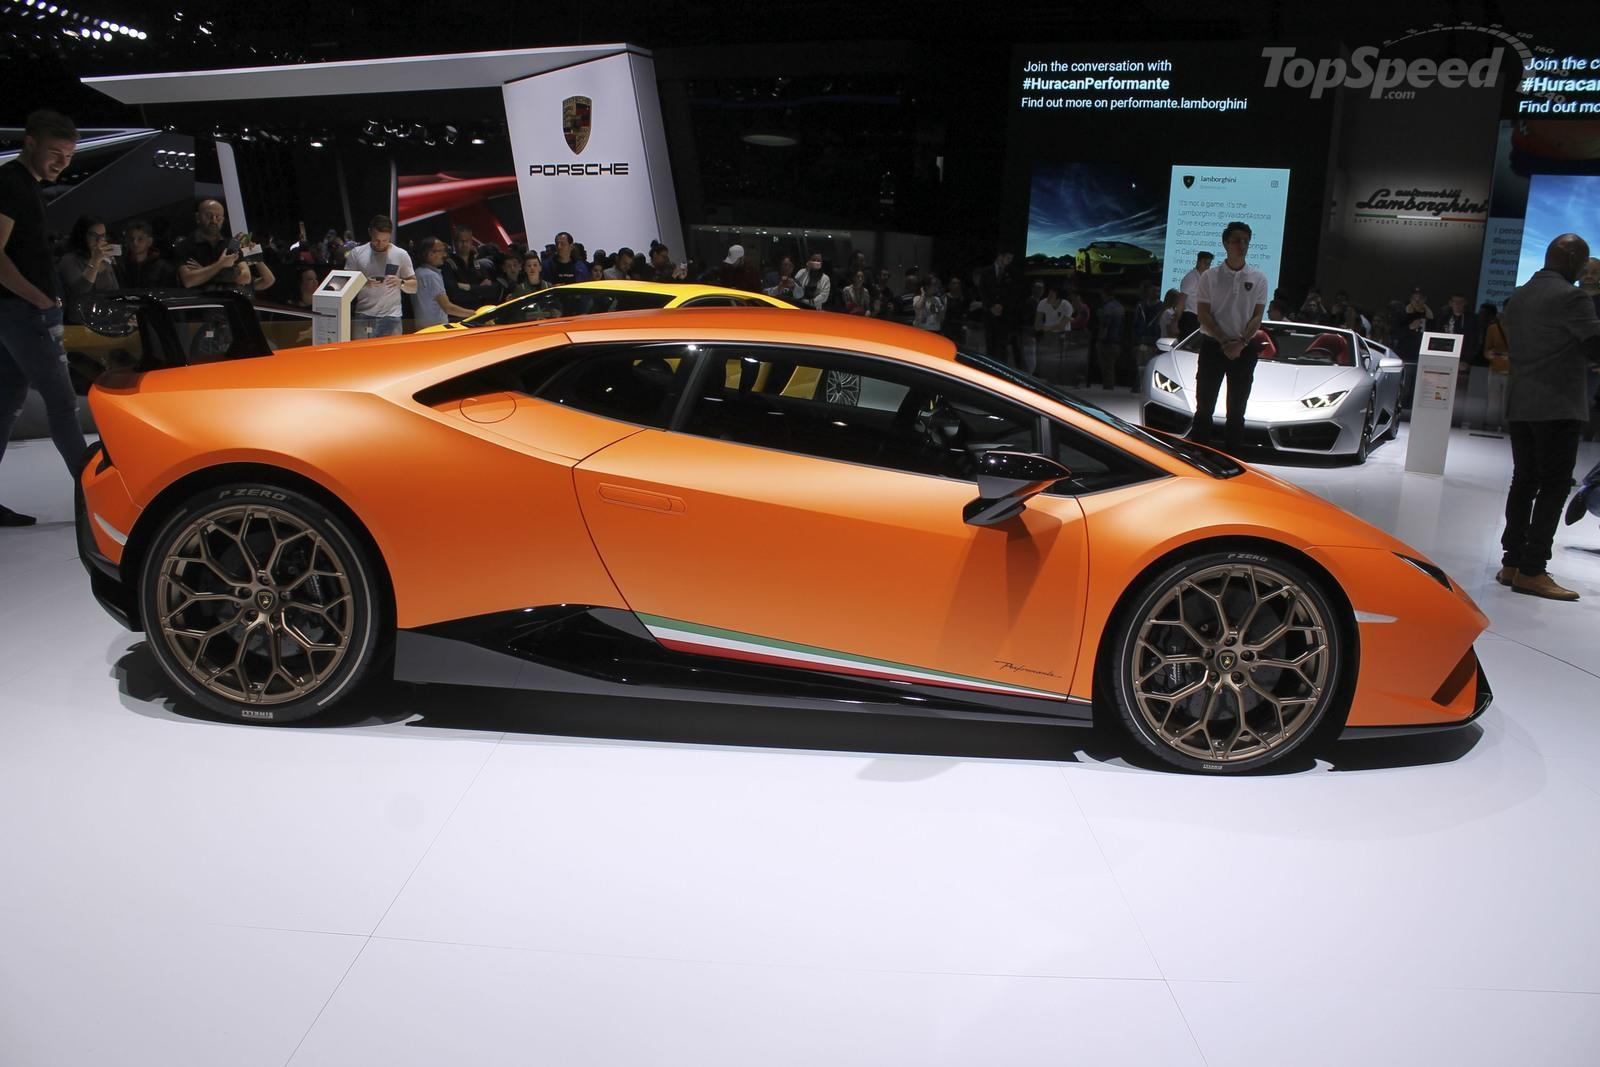 2017 lamborghini huracan perfomante picture 711063 car review top speed. Black Bedroom Furniture Sets. Home Design Ideas